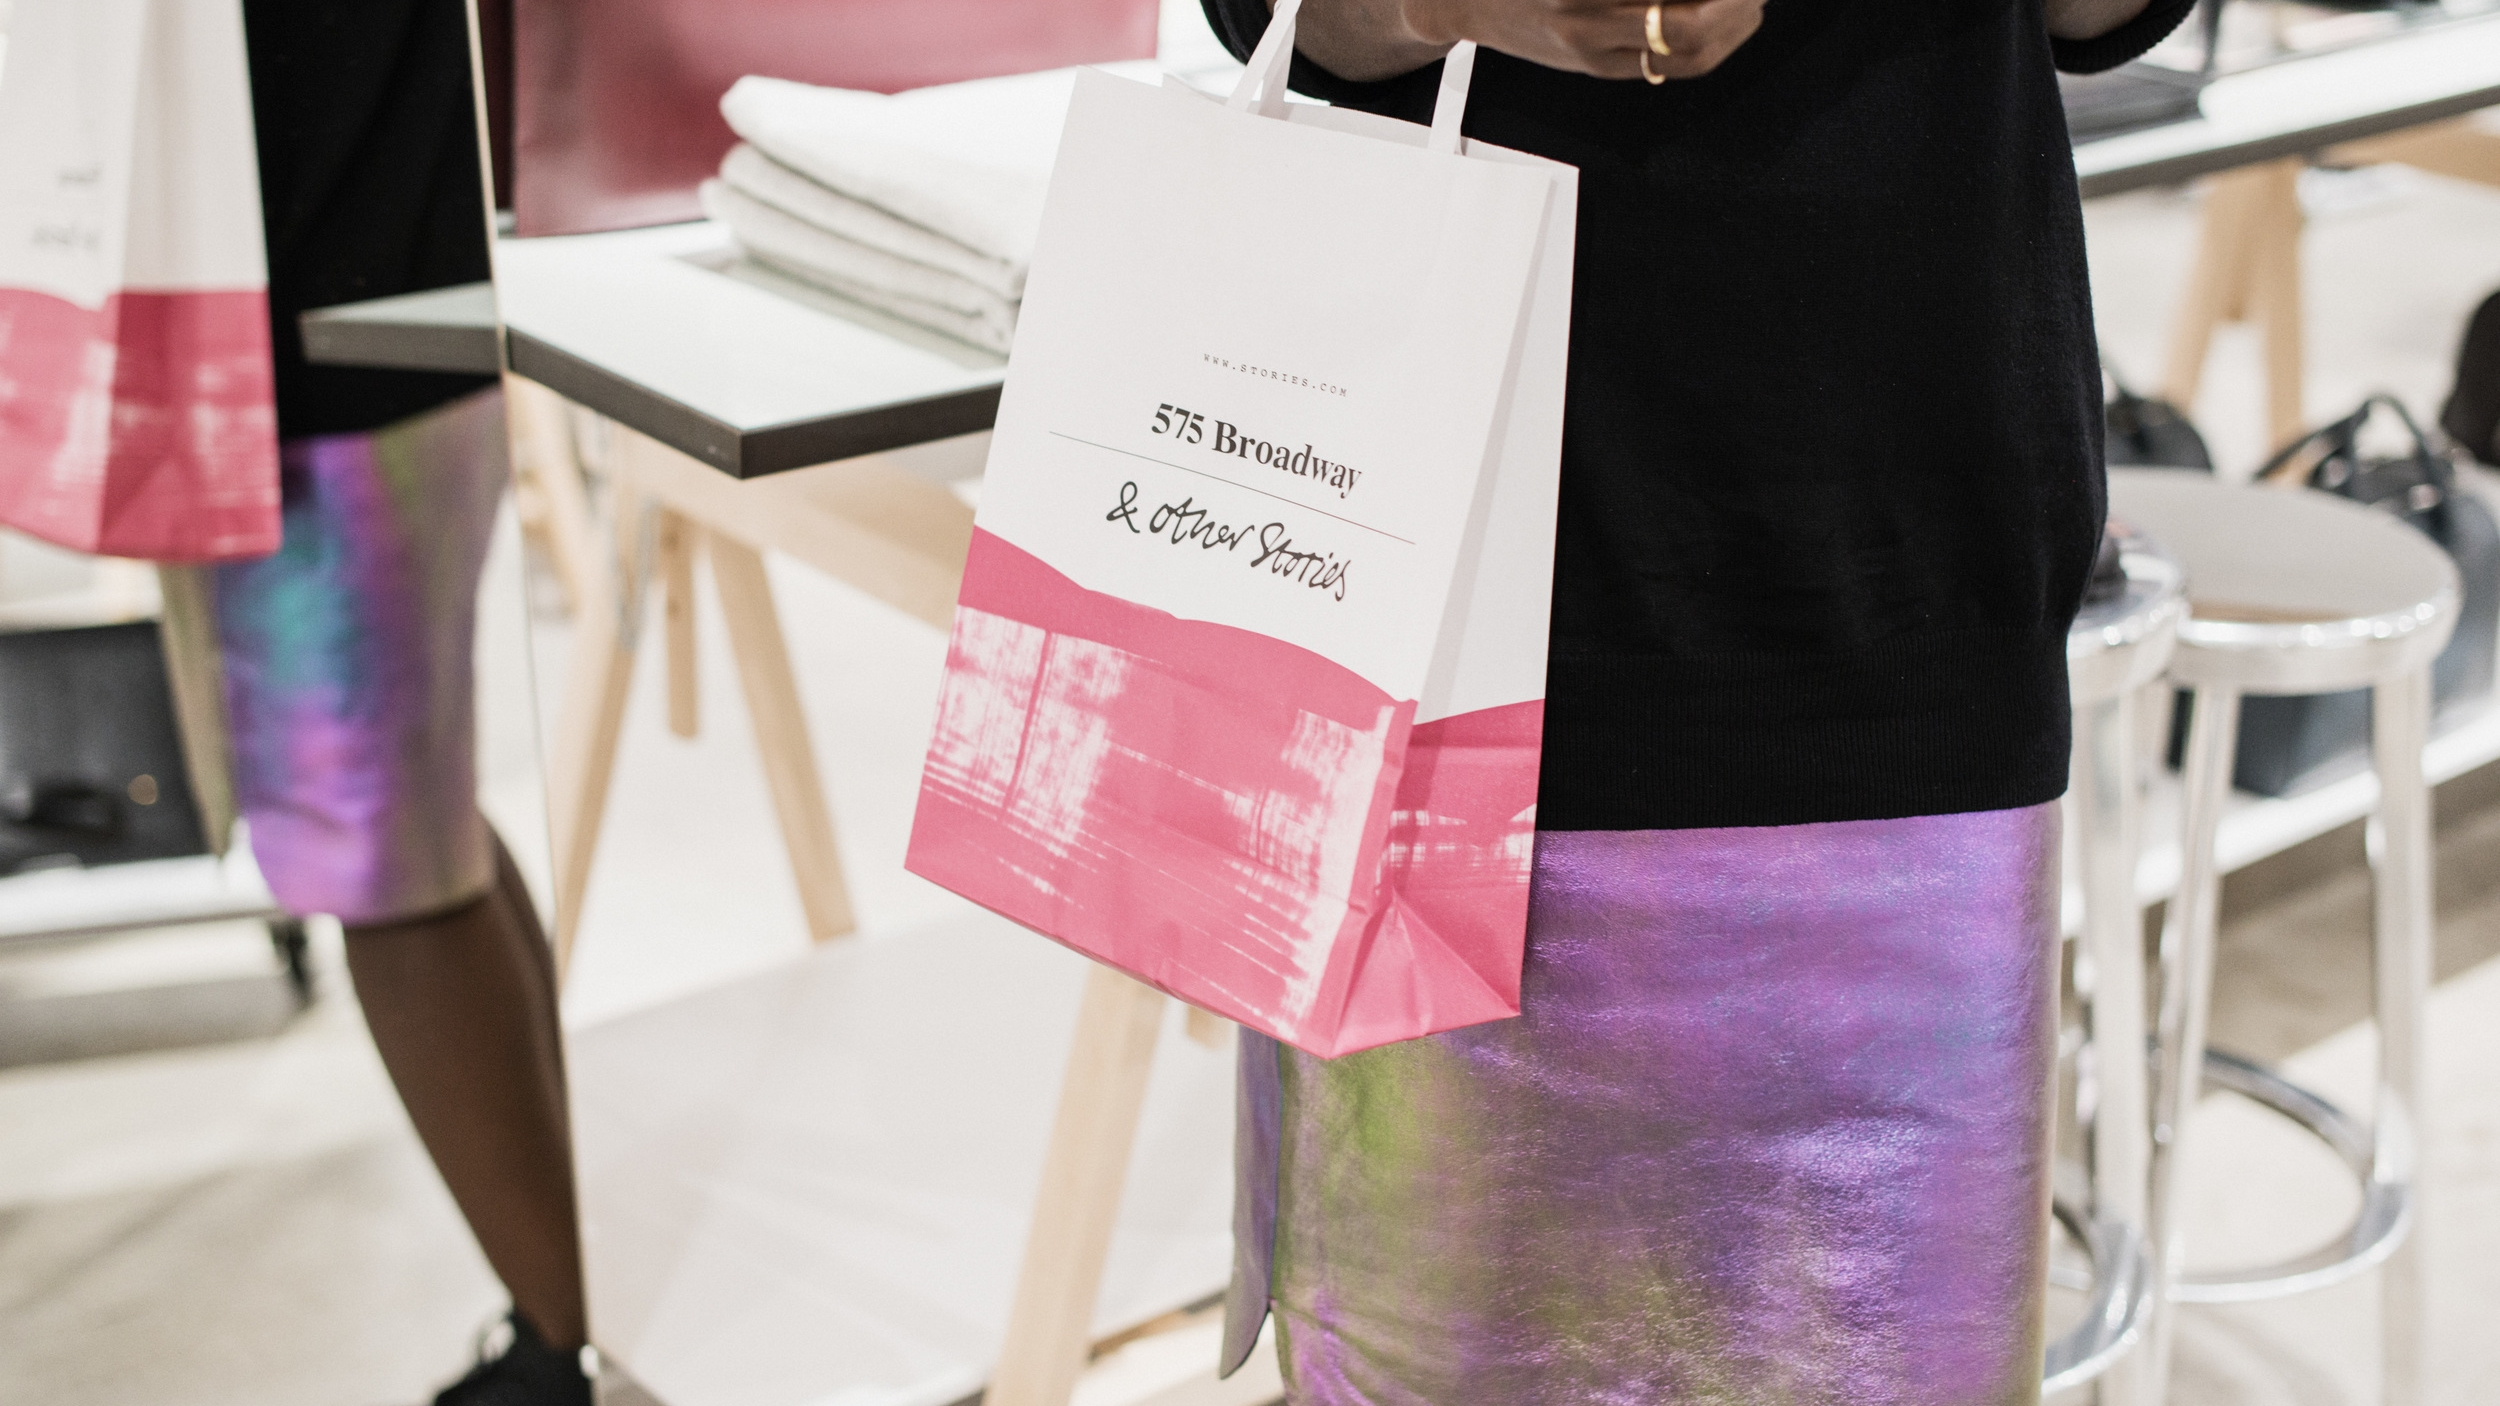 CoolBrands & Other Stories bag picture.jpg